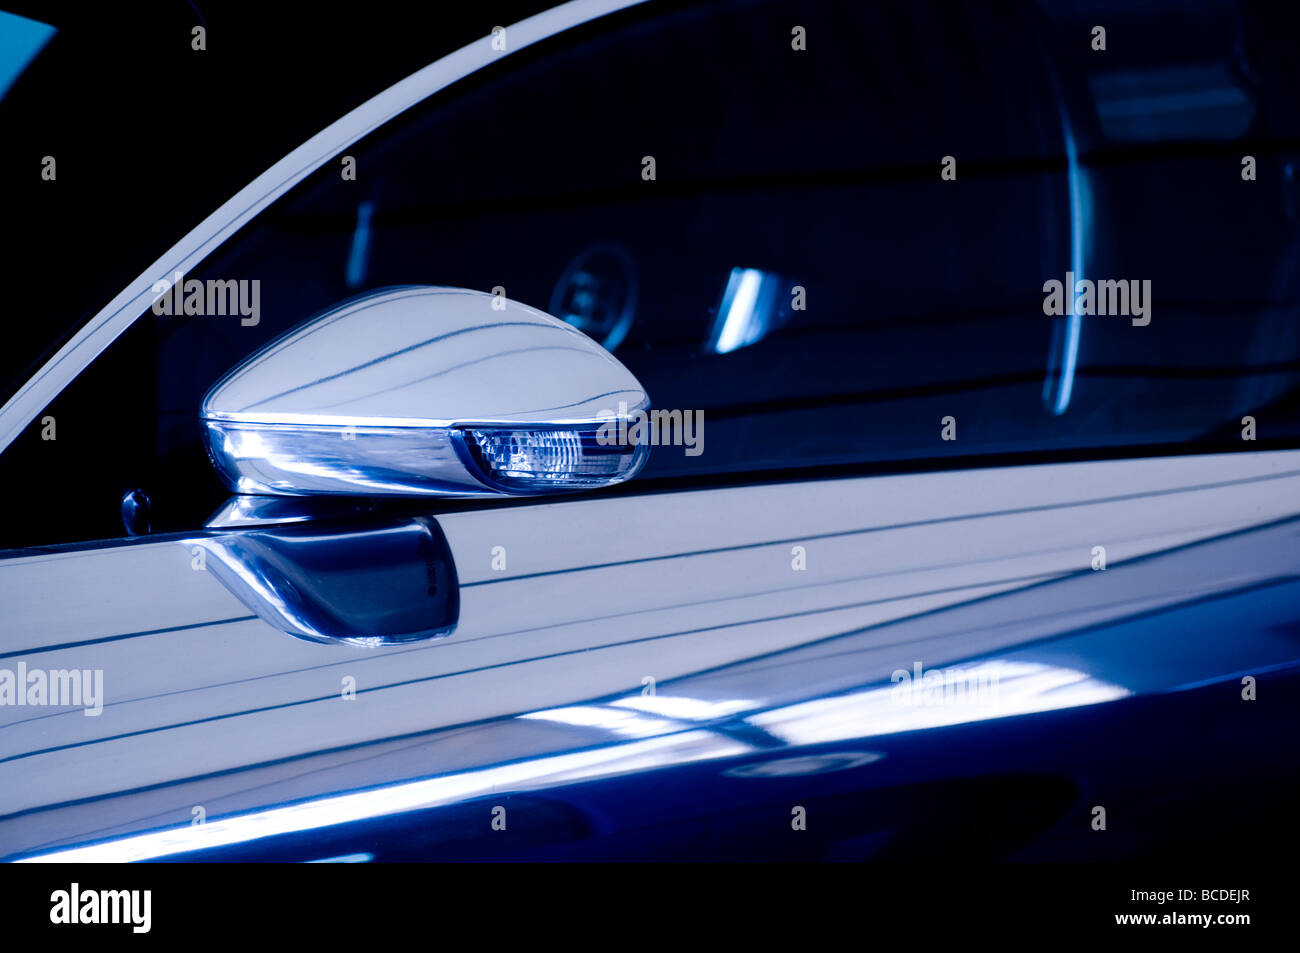 new car - Stock Image